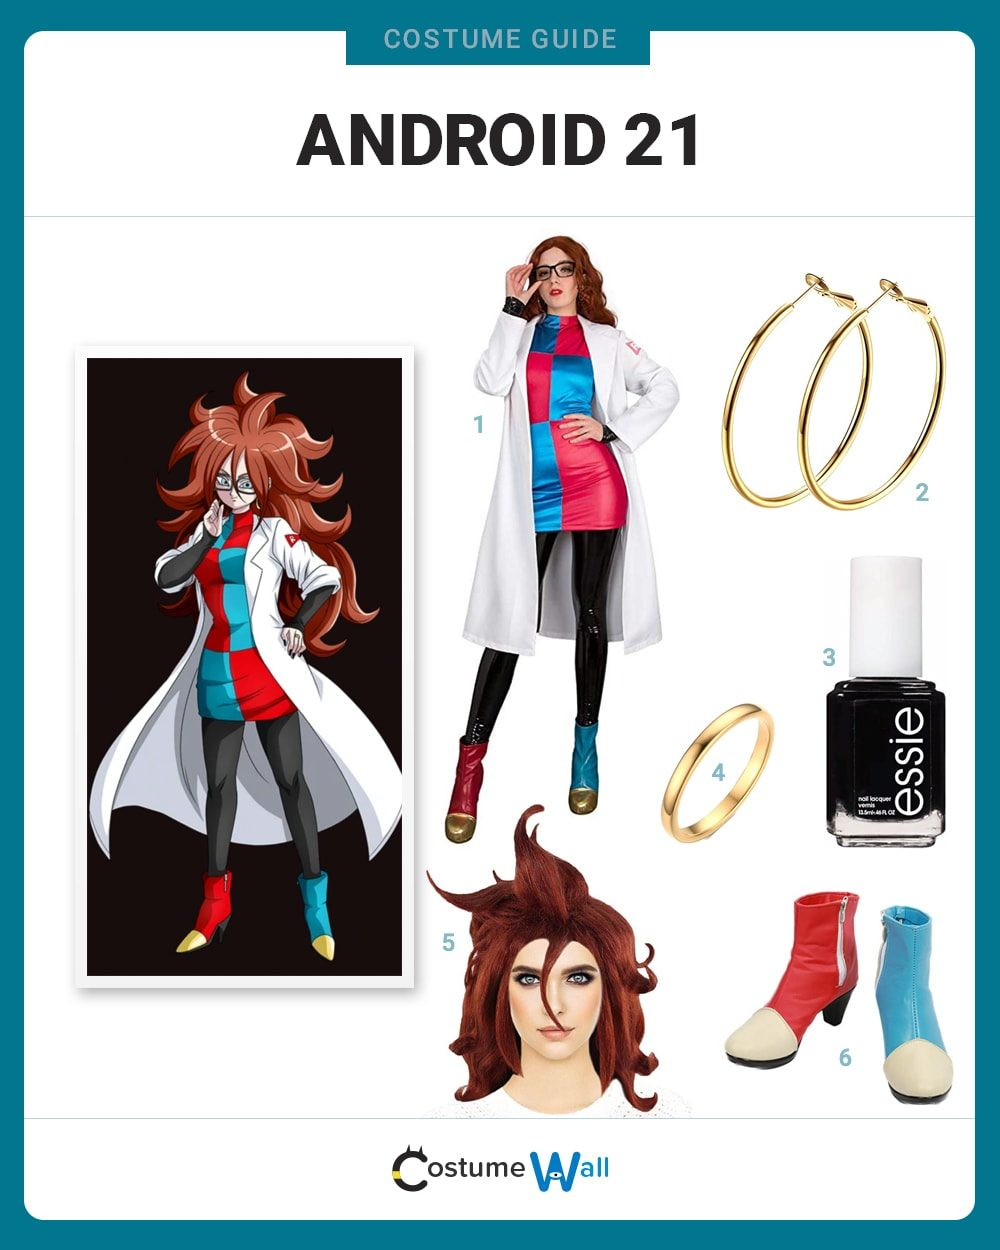 Android 21 Costume Guide